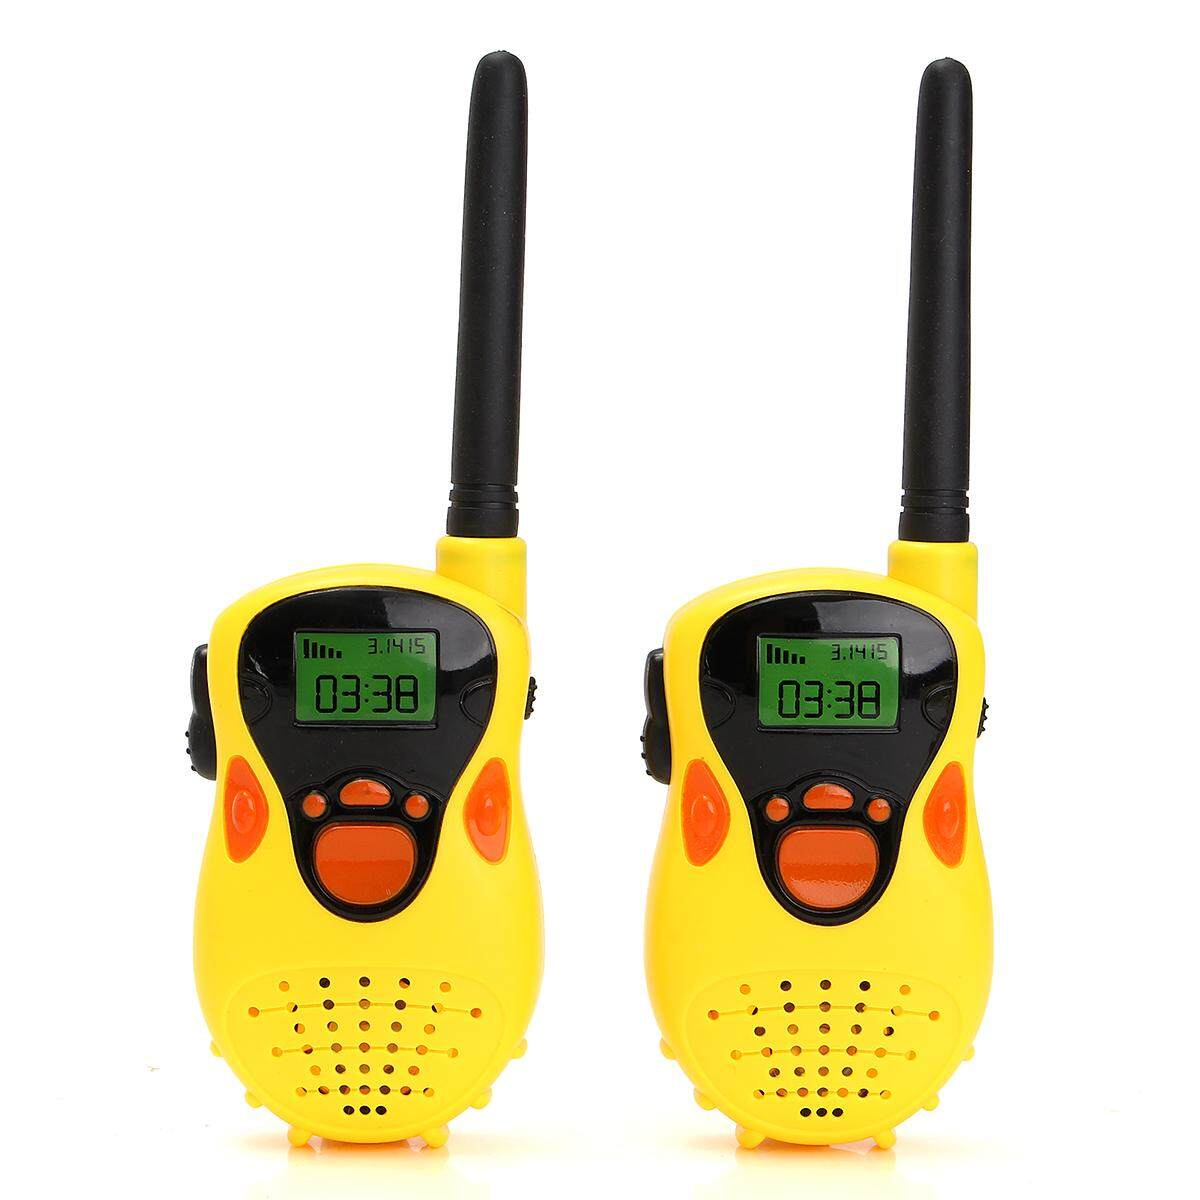 2pcs Handheld Two-Way Radio Transceiver Walkie Talkie For Kids Toy Gifts By Vividly.